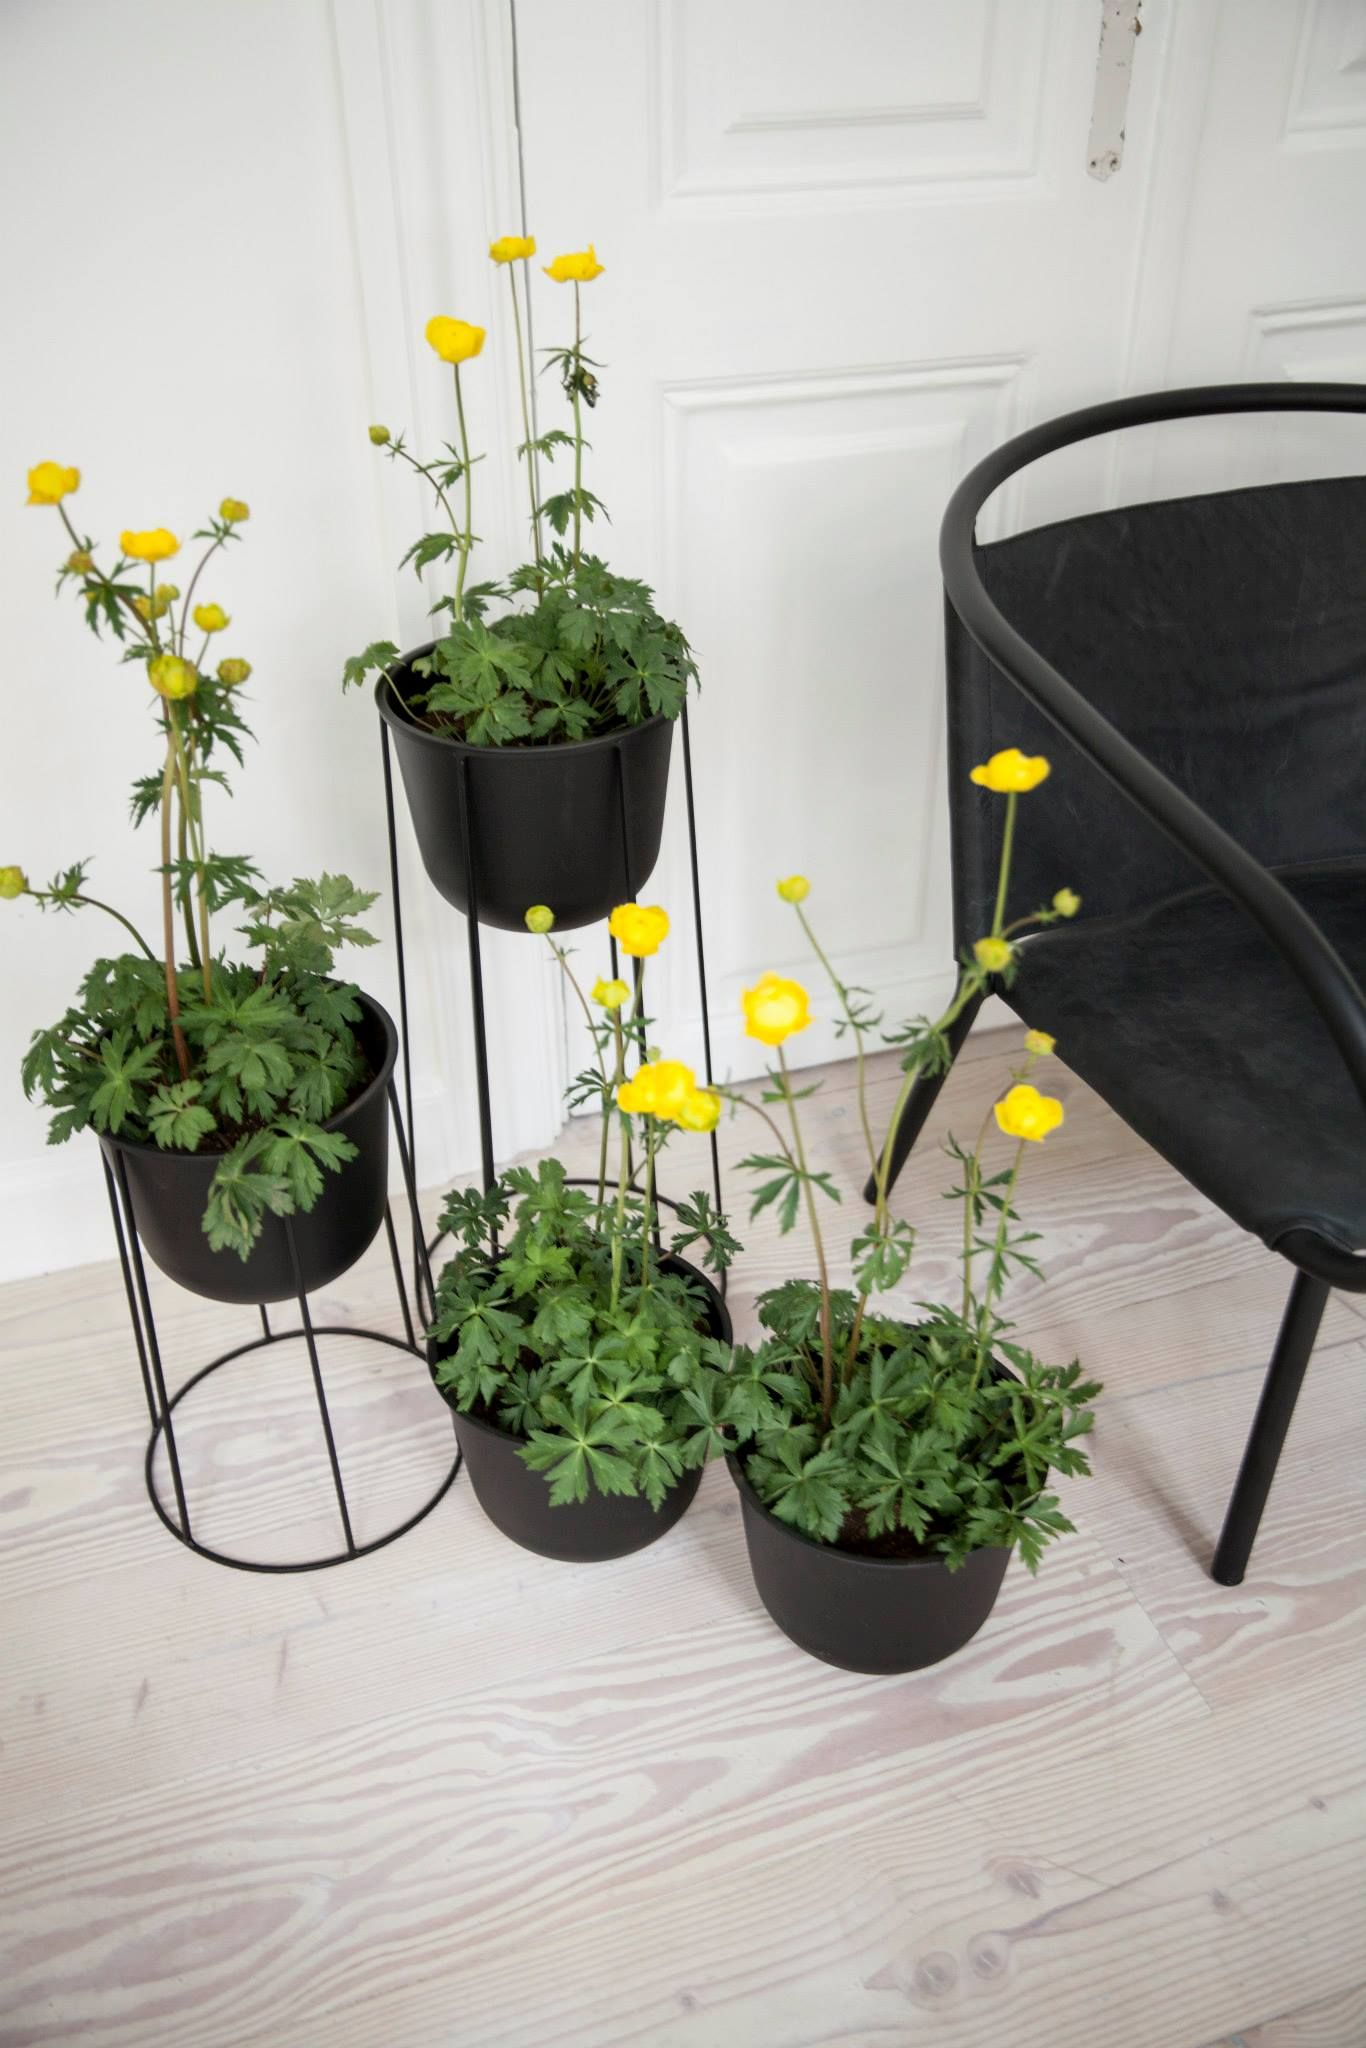 Wire Pot by Norm Architects for Menu plant life